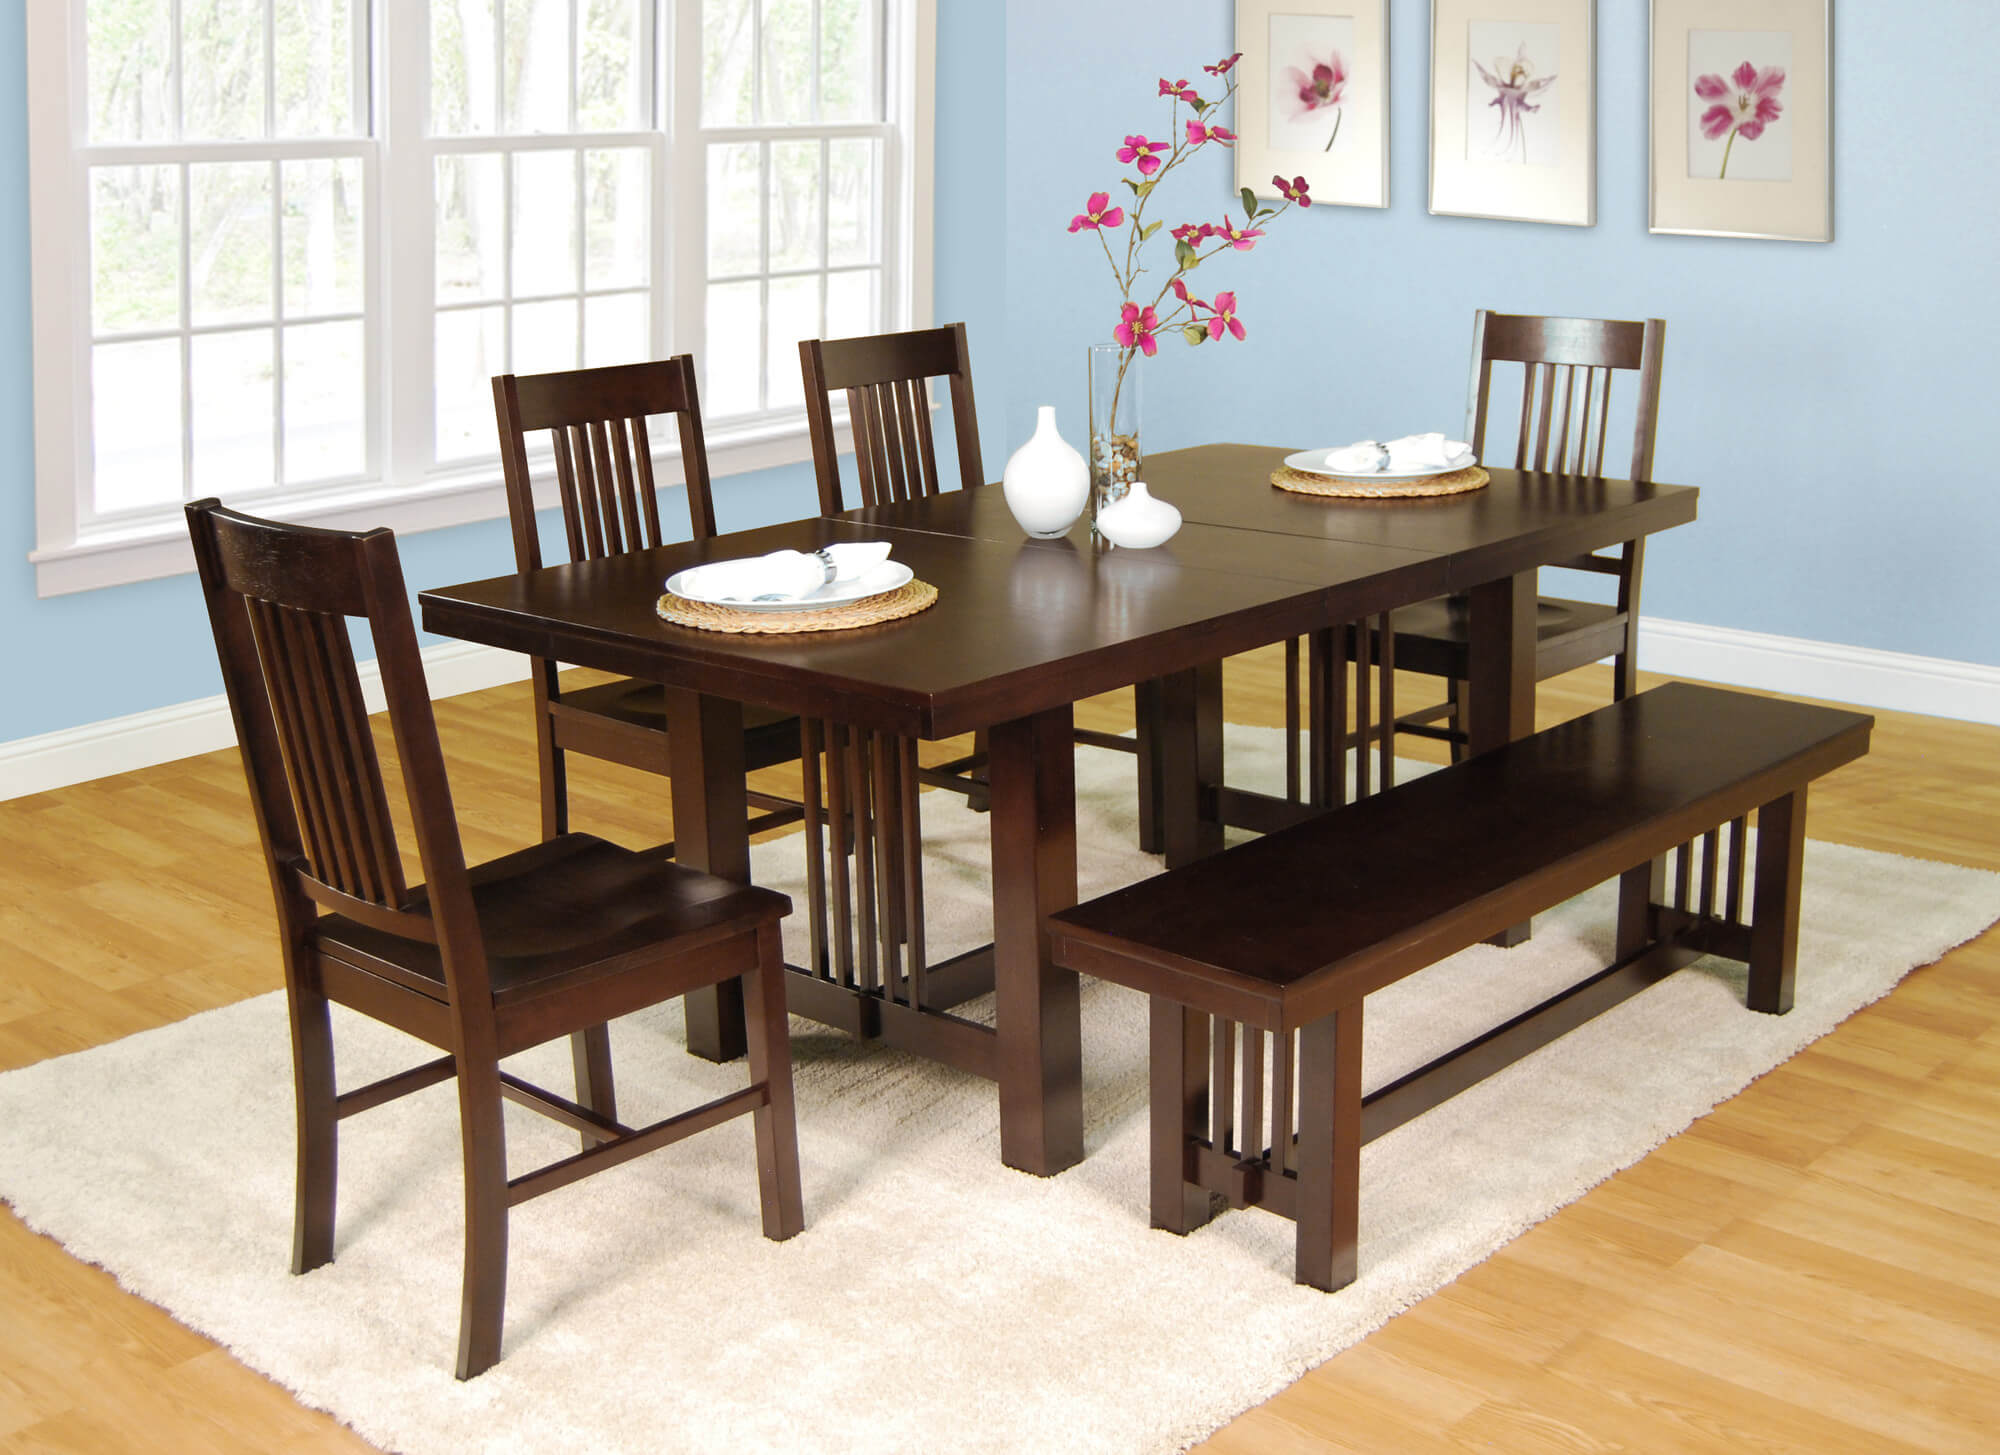 Small Dining Table 26 Dining Room Sets Big And Small With Bench Seating 2019